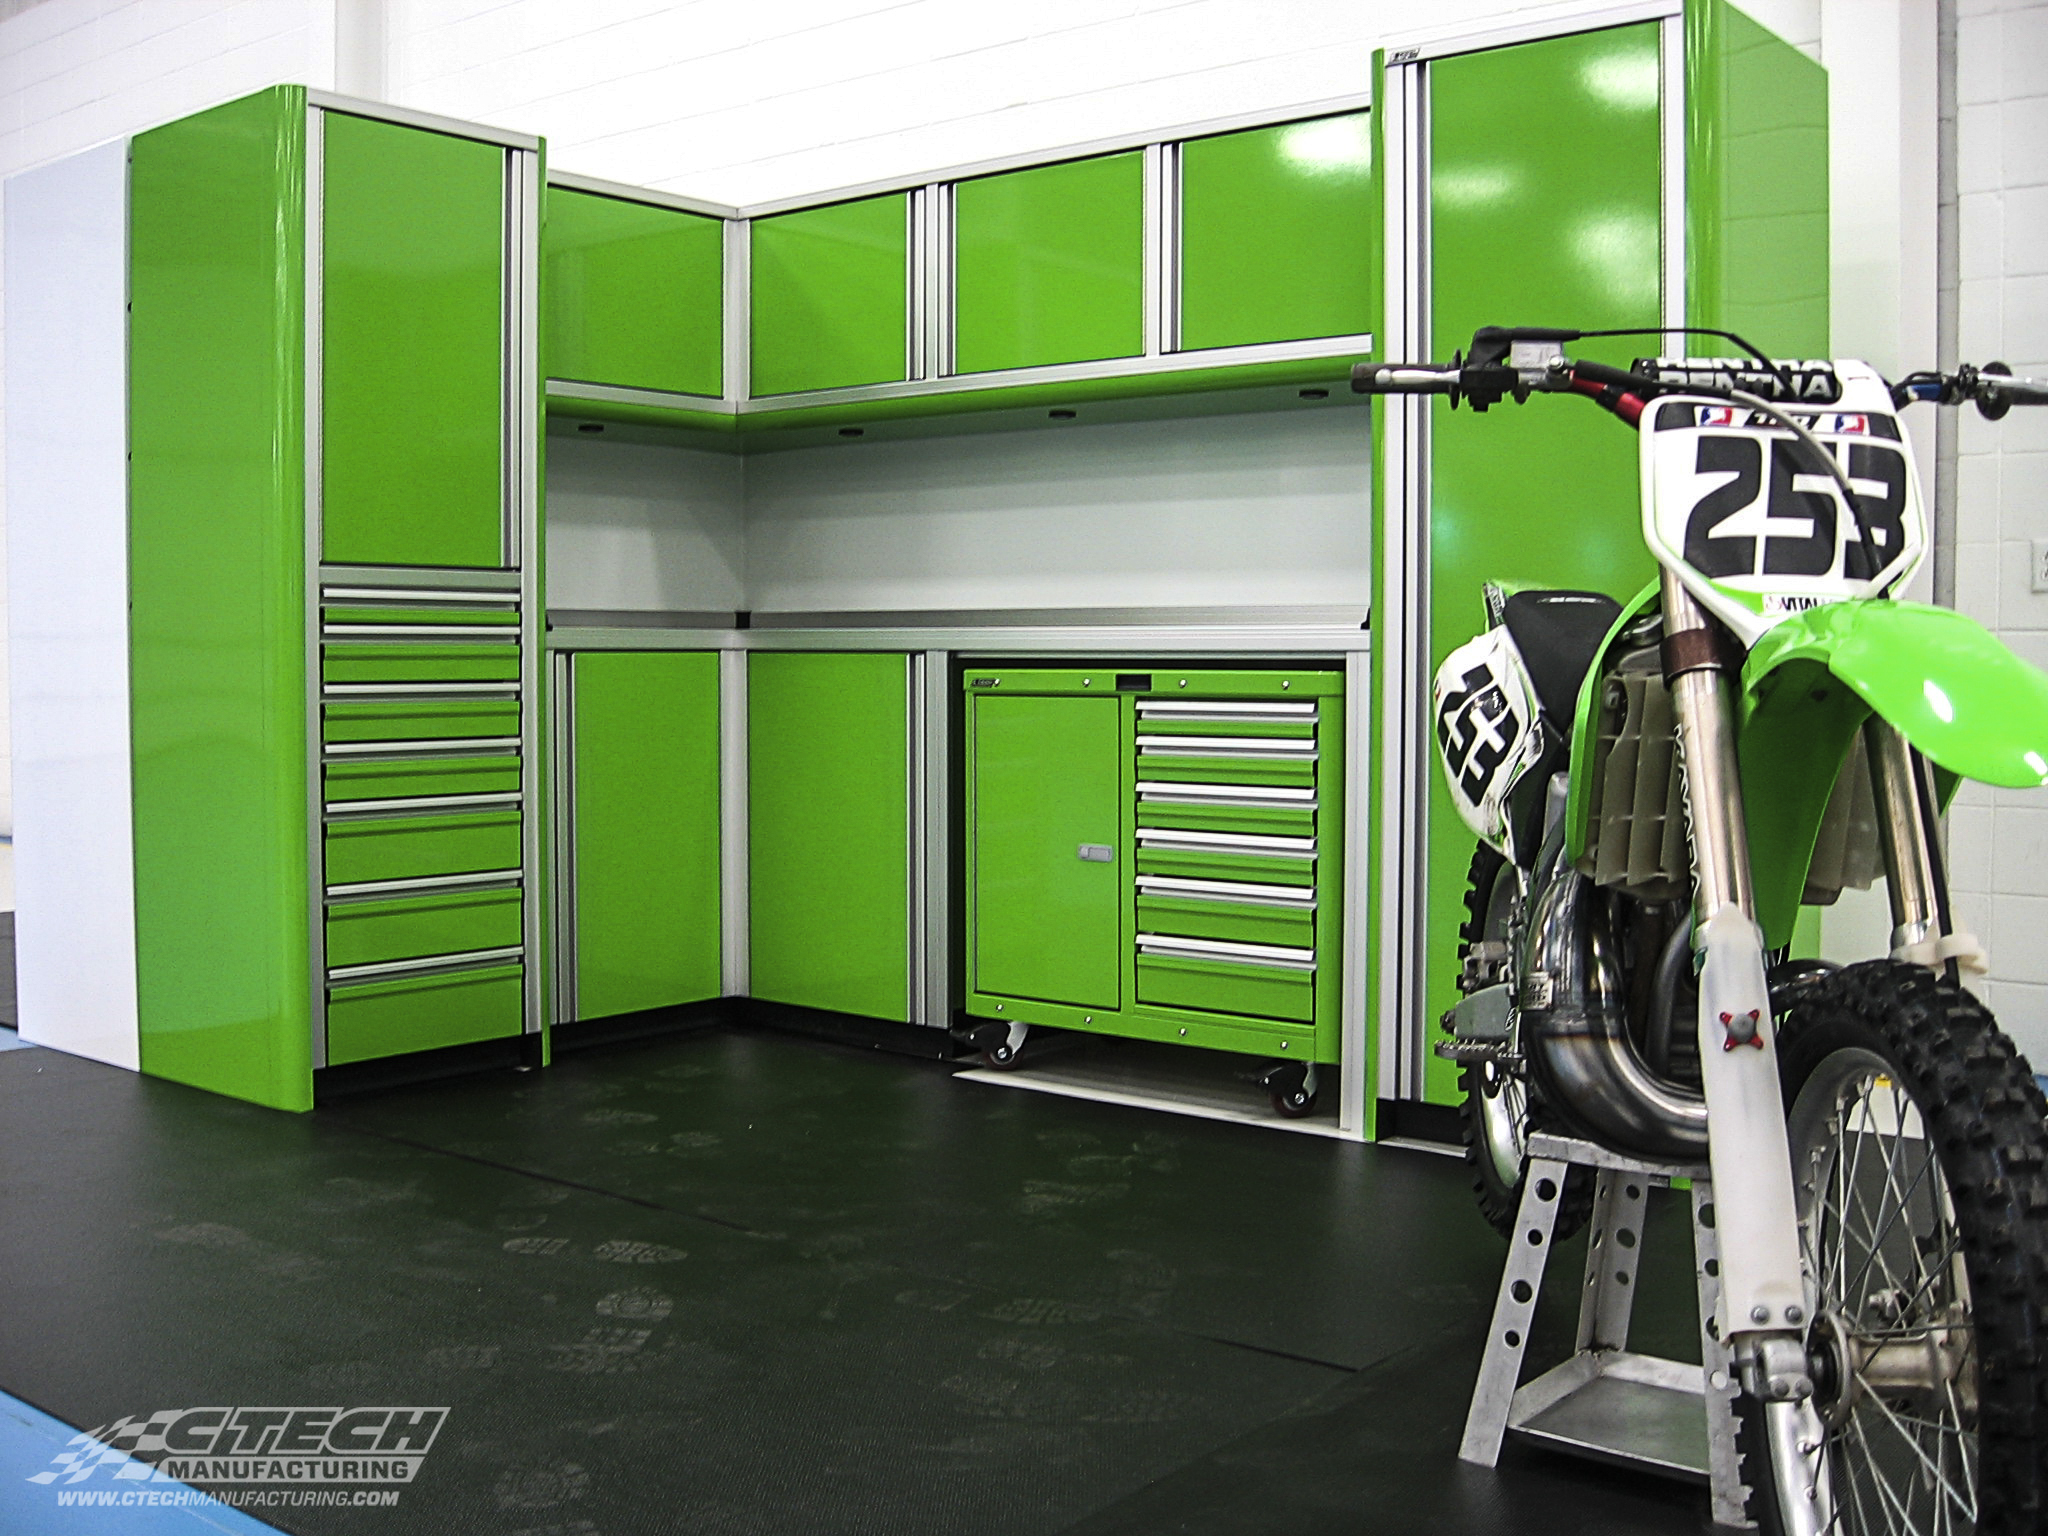 CTECH offers the most advanced modular storage solutions in the industry. The LimeRock cabinet package, pictured here, is available in a ready-to-order configuration. Extra customization is always an option, however! BOM 31314